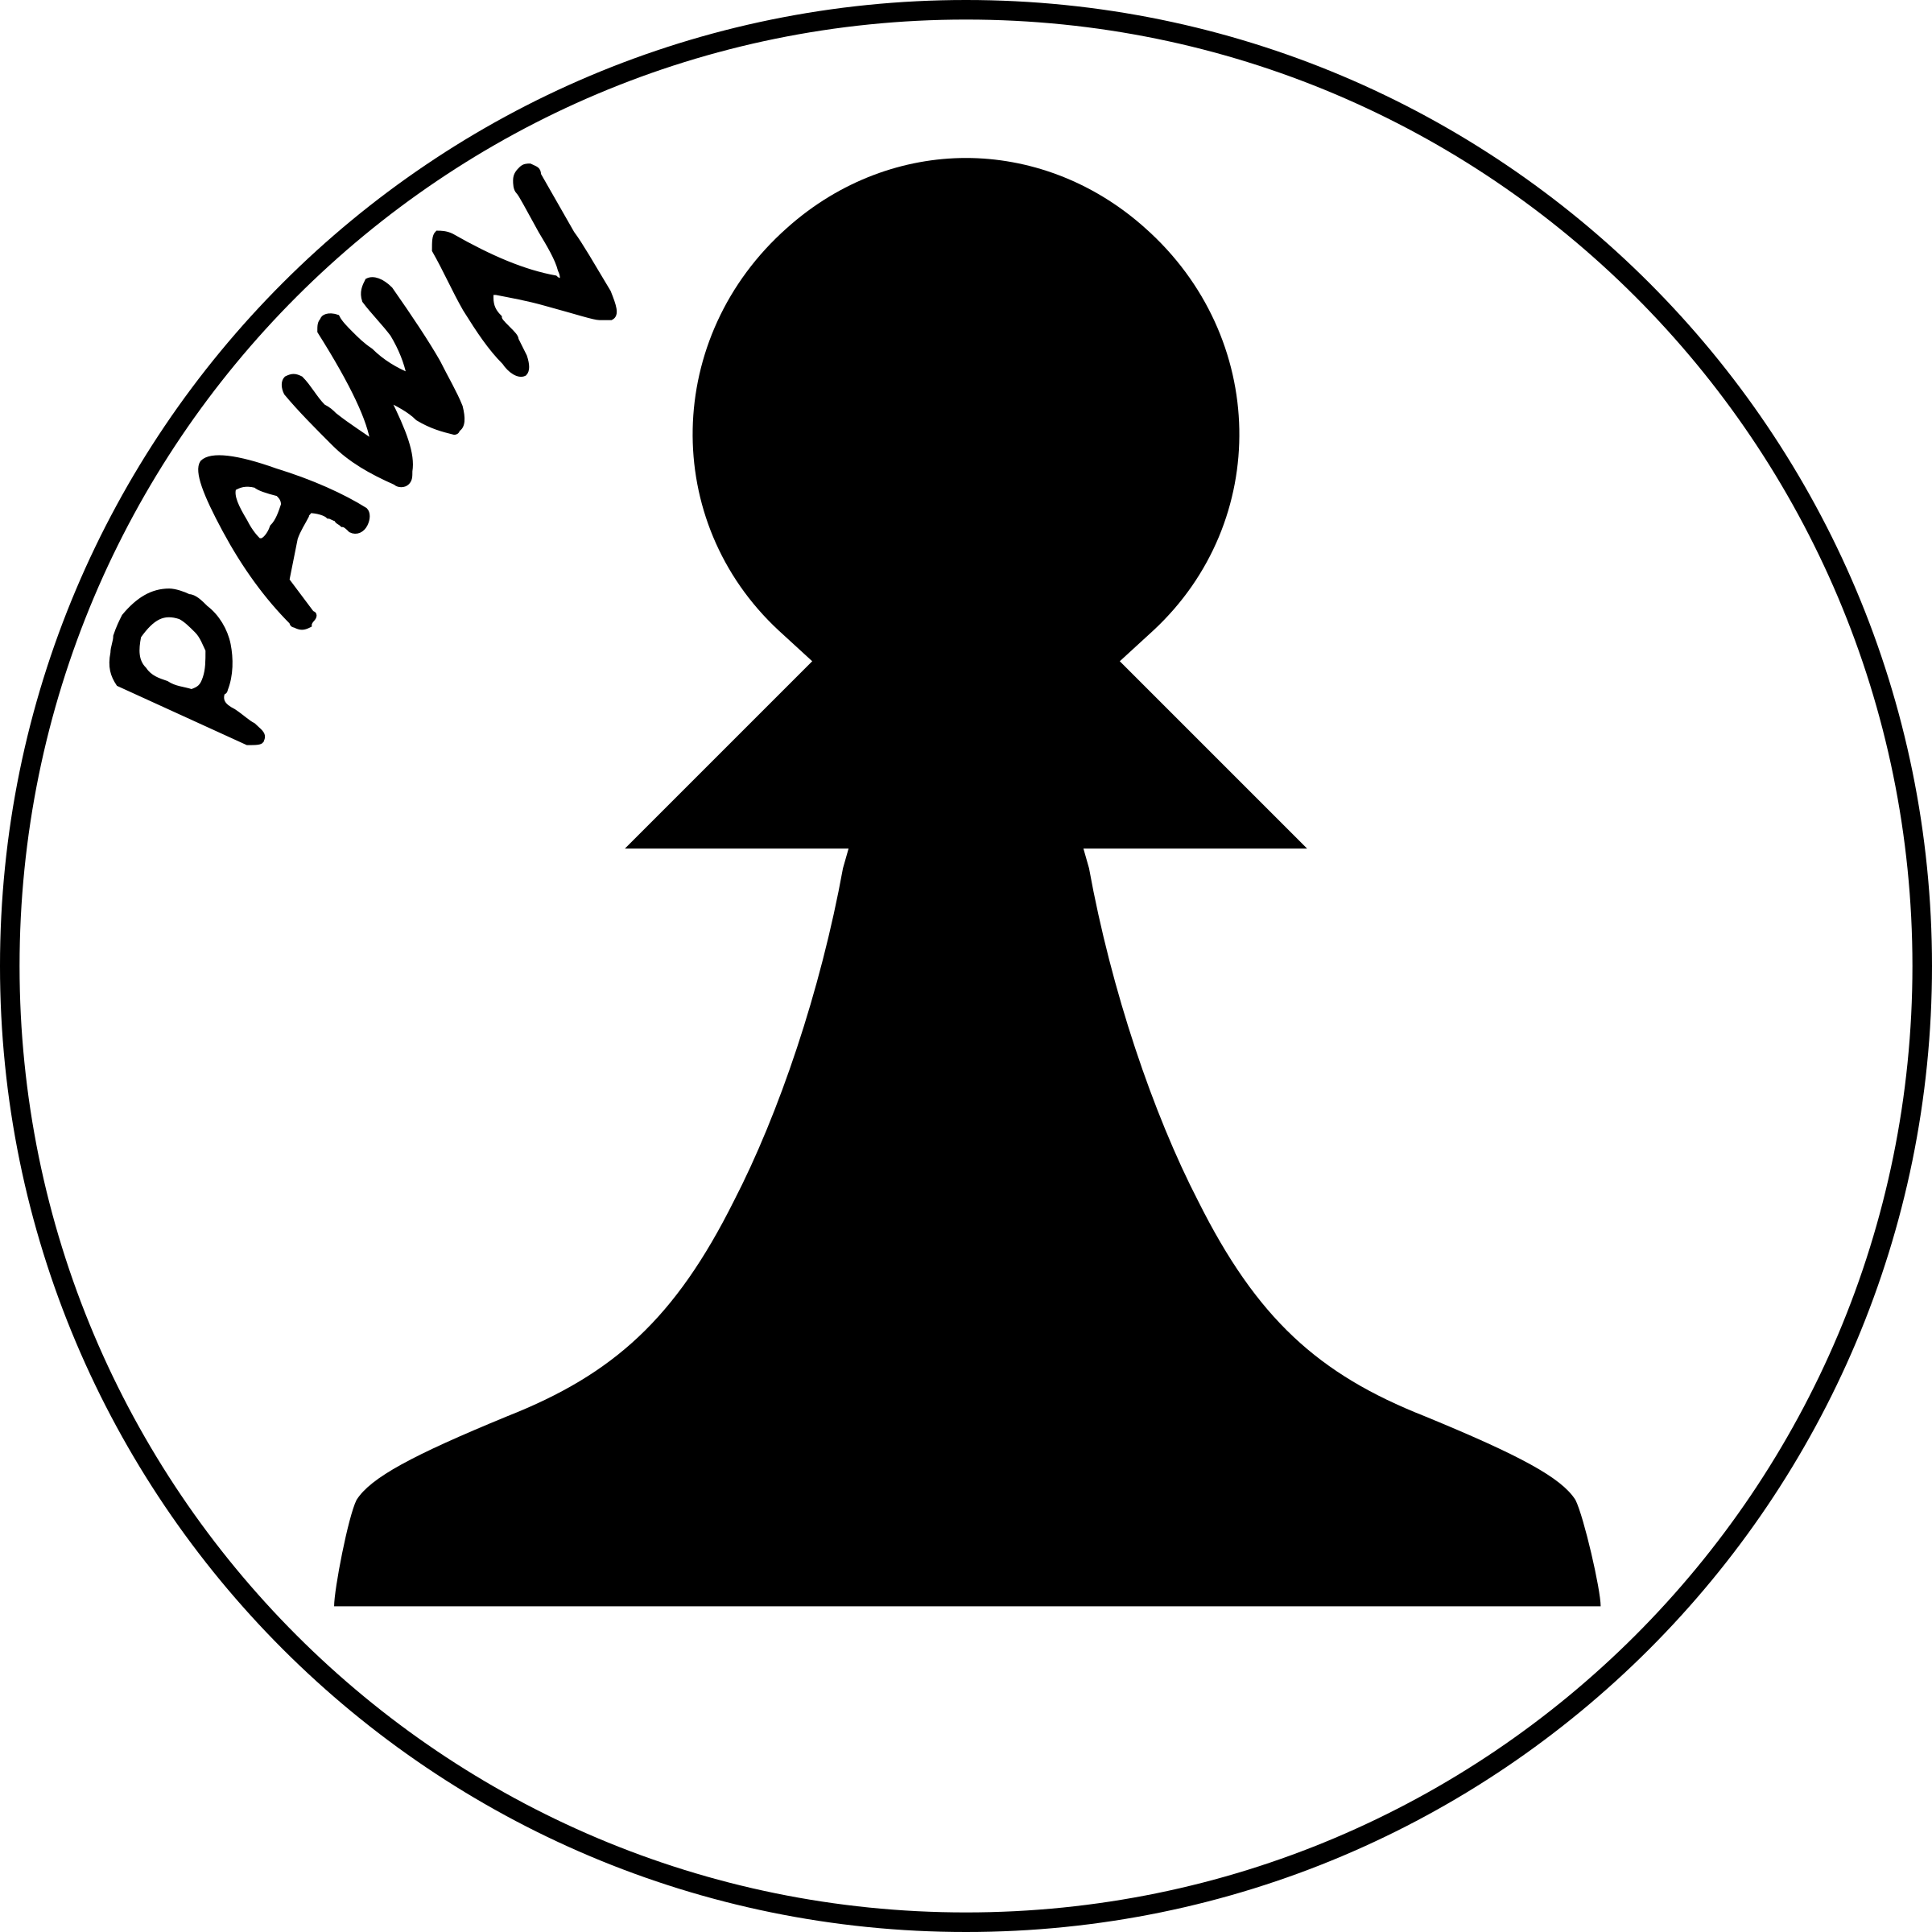 Chess Piece with Name - Black Pawn by DG-RA